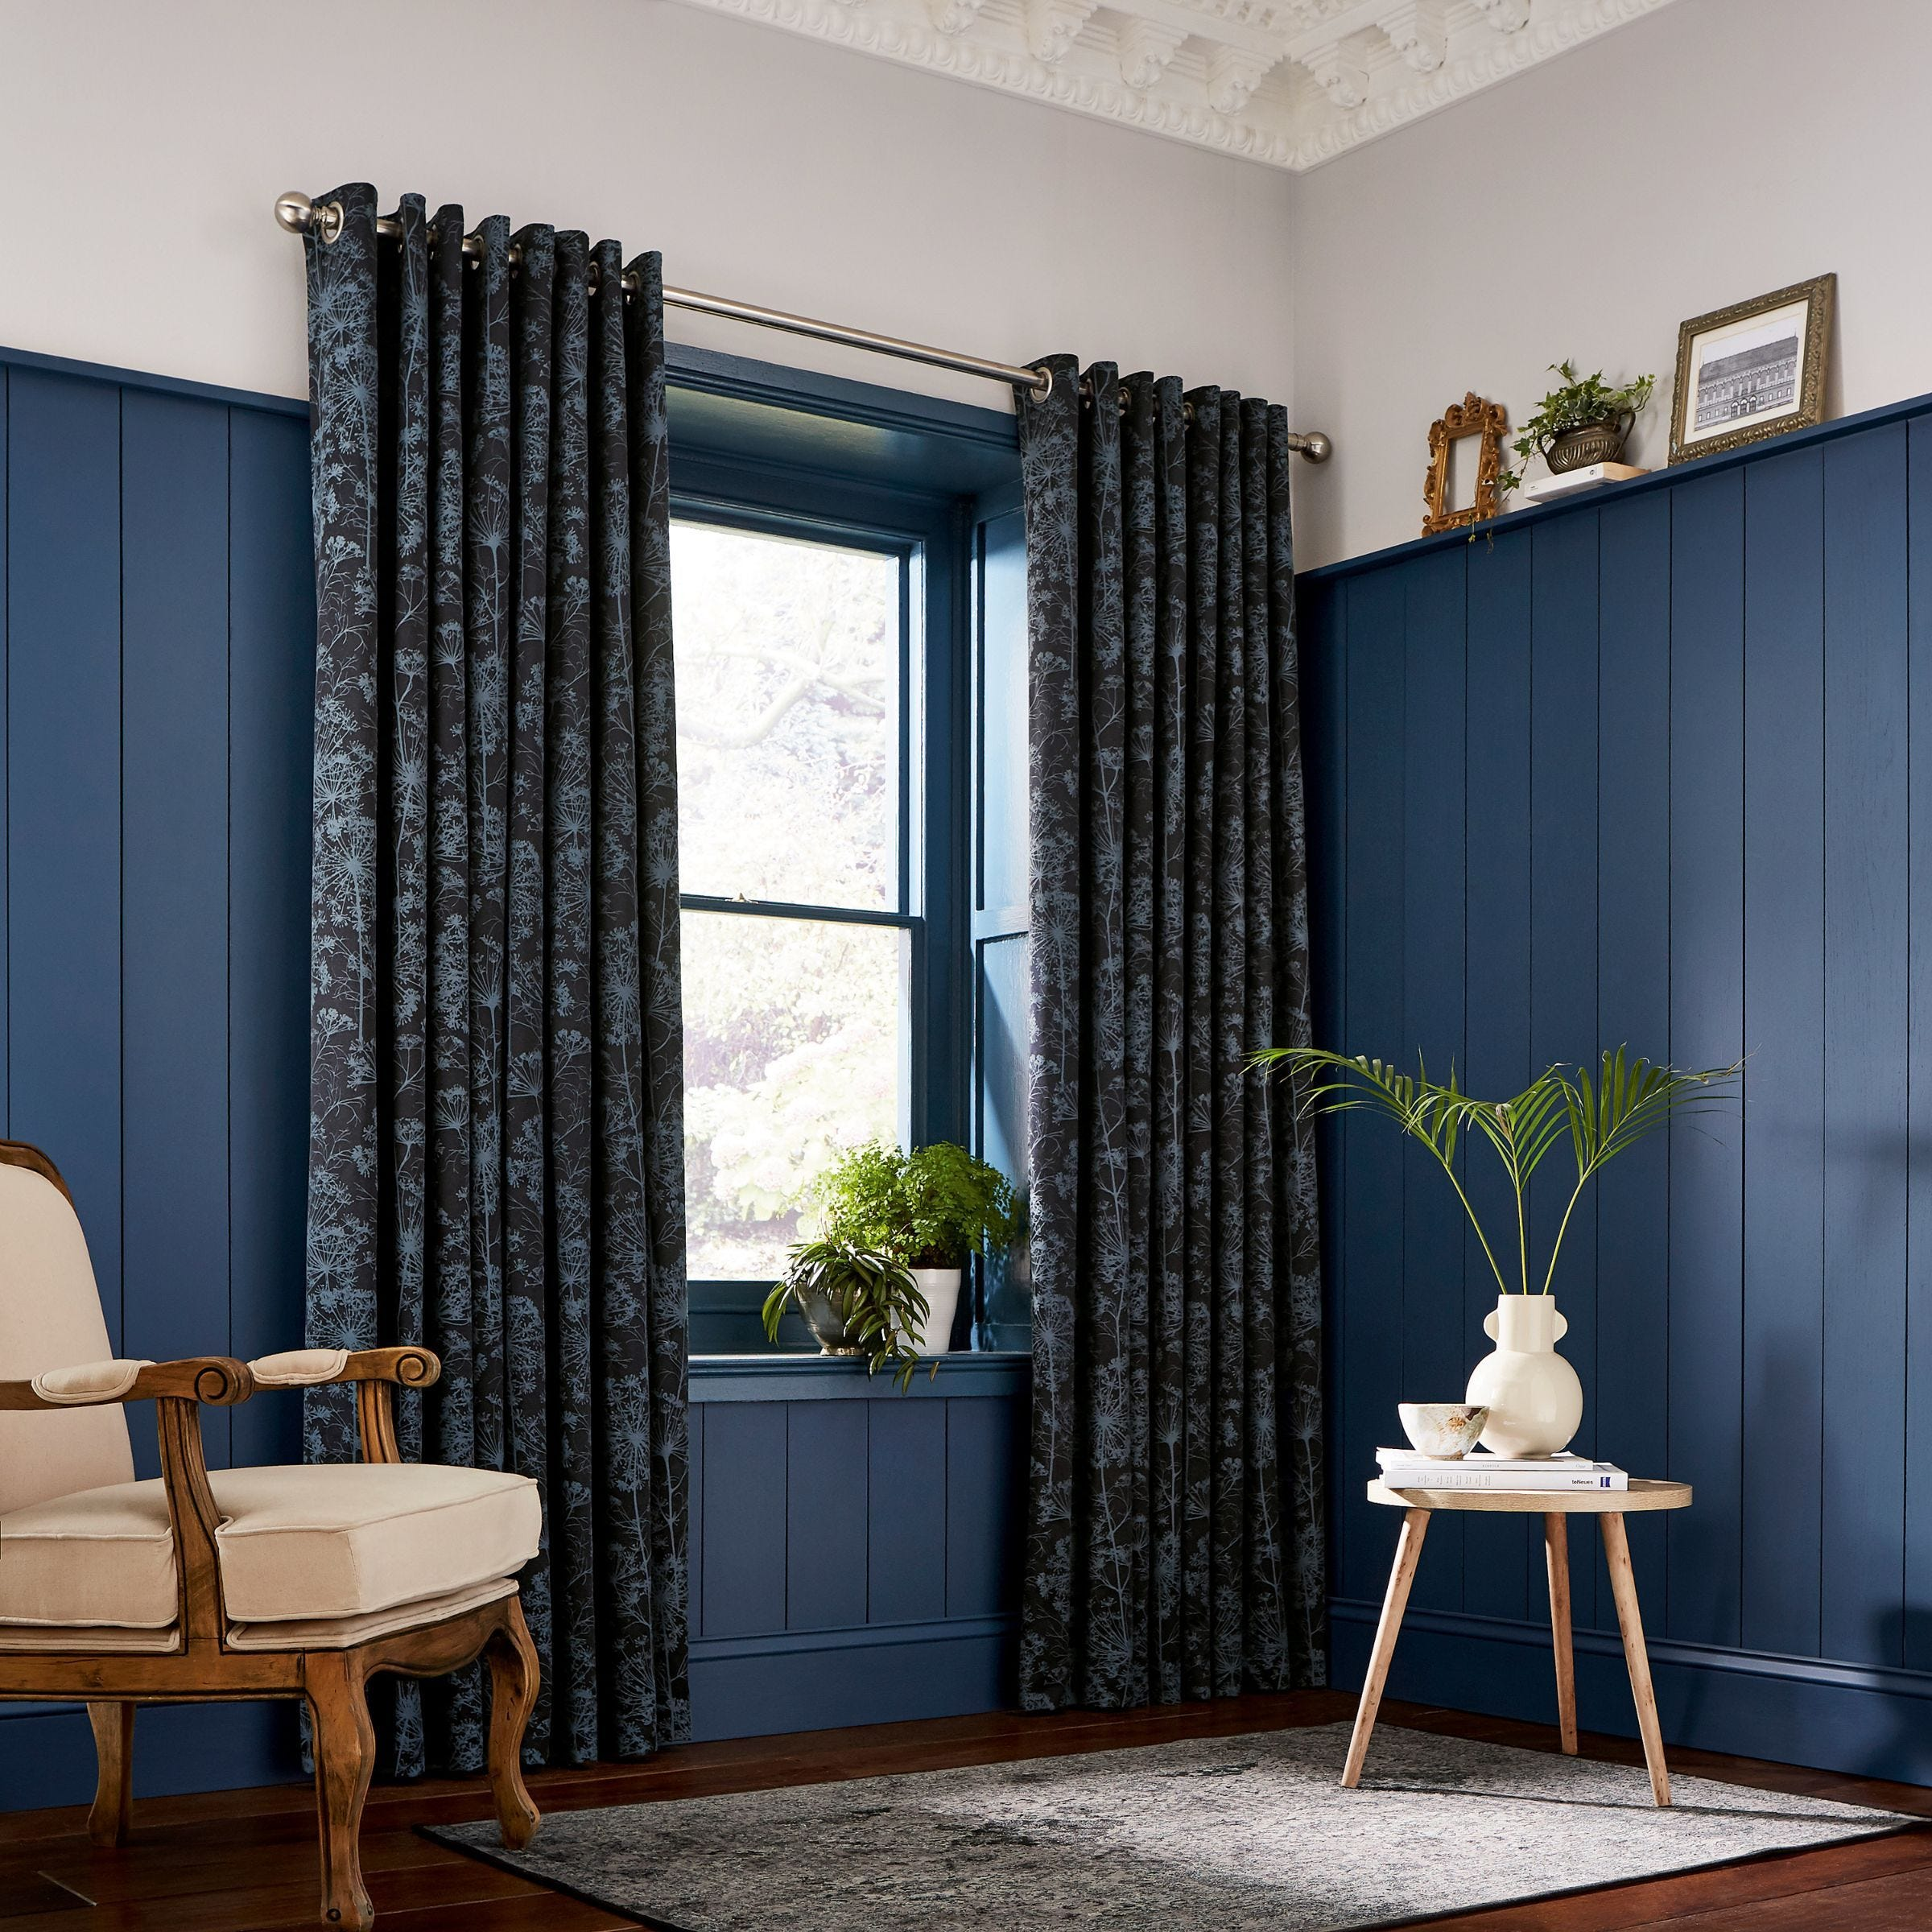 Clarissa Hulse Dill Lined Curtains Dark Blue Bedeck Home